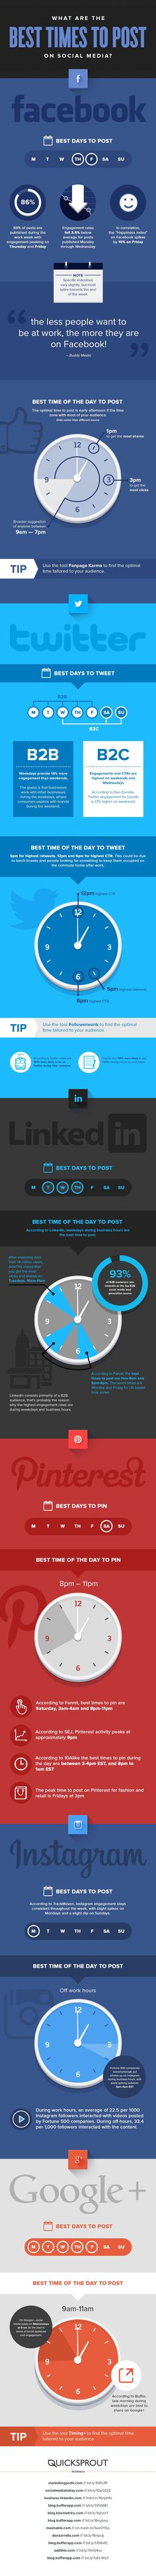 What Are The Best Times to Post on Social Media #SocialMedia